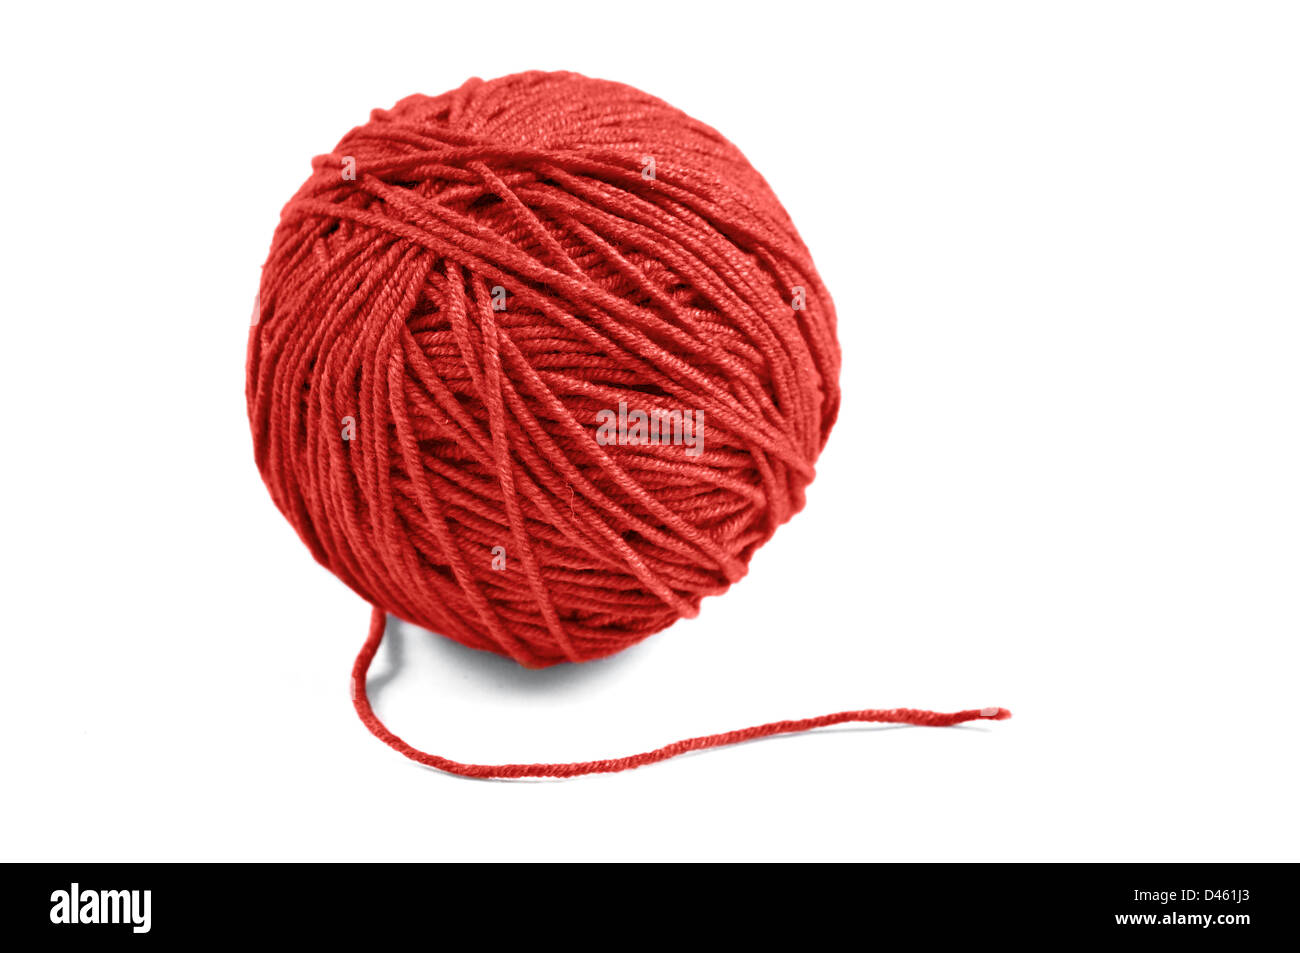 Red wool yarn ball isolated on white background - Stock Image